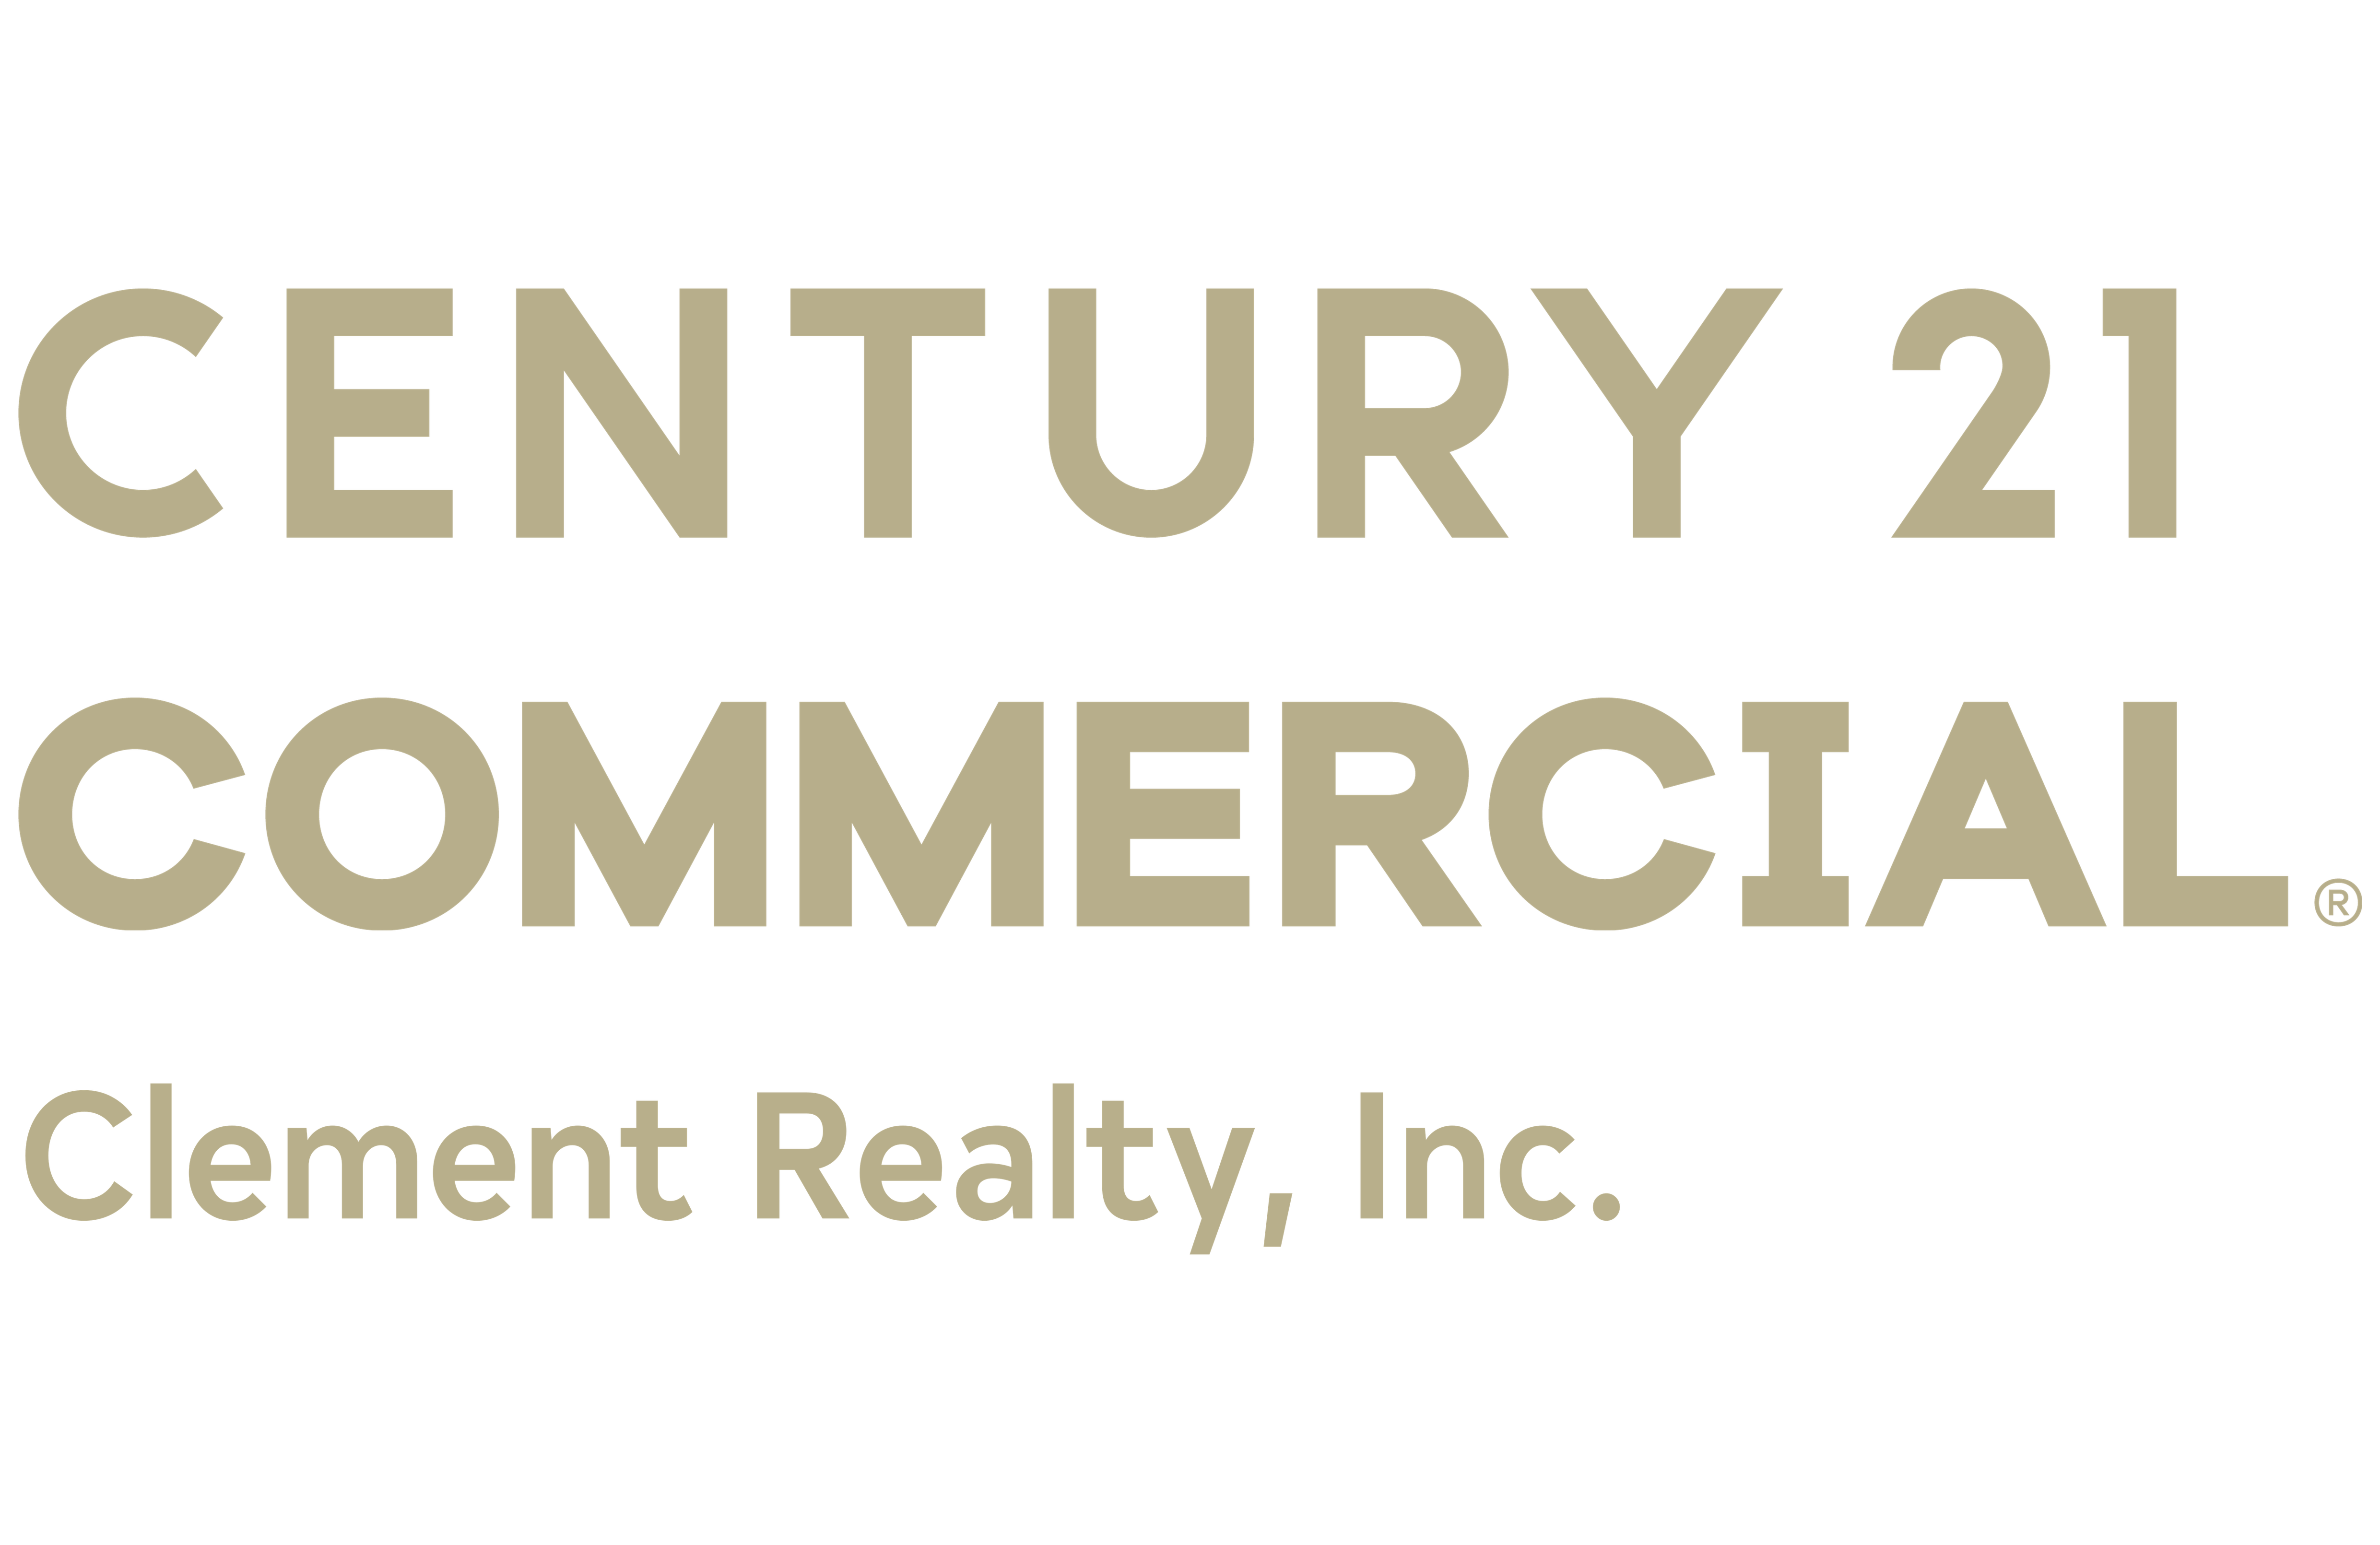 CENTURY 21 Clement Realty, Inc.